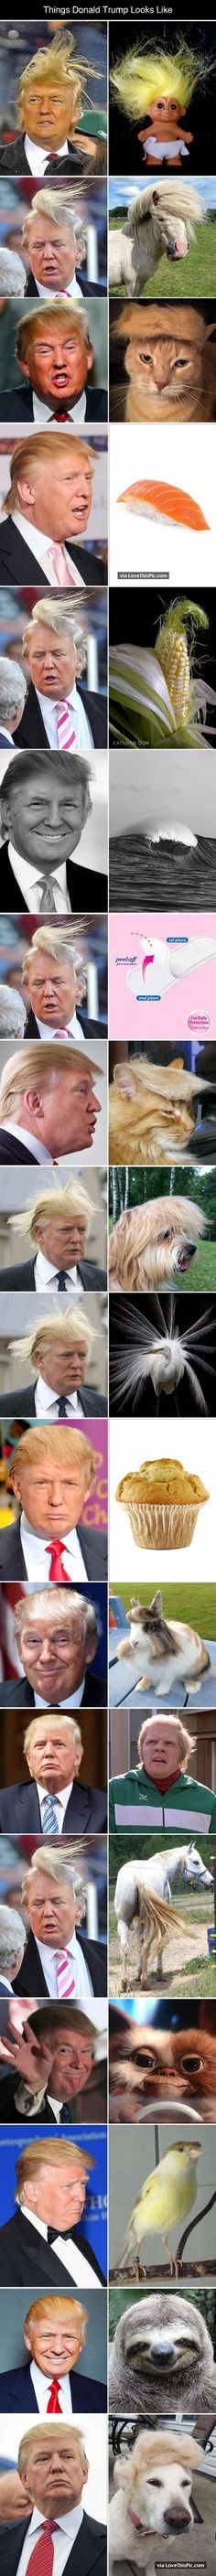 Things Donald Trump Looks Like funny jokes lol funny sayings joke humor funny pictures funny images donald trump